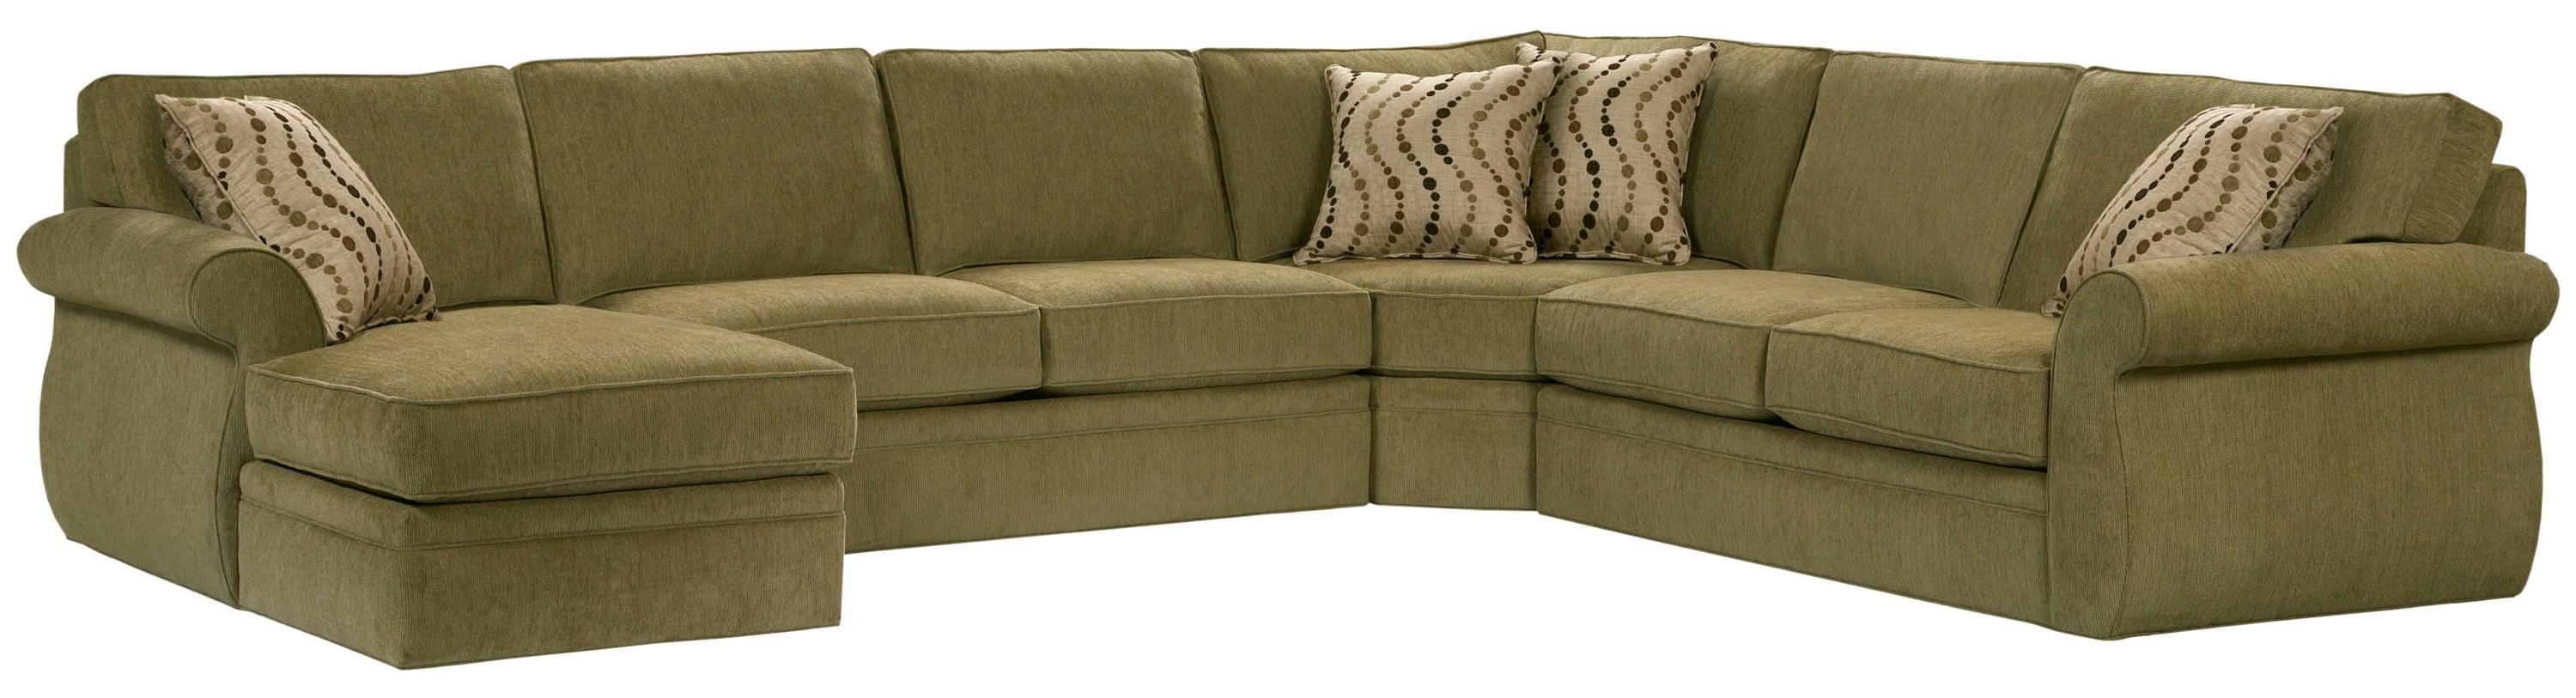 20 inspirations broyhill sectional sleeper sofas